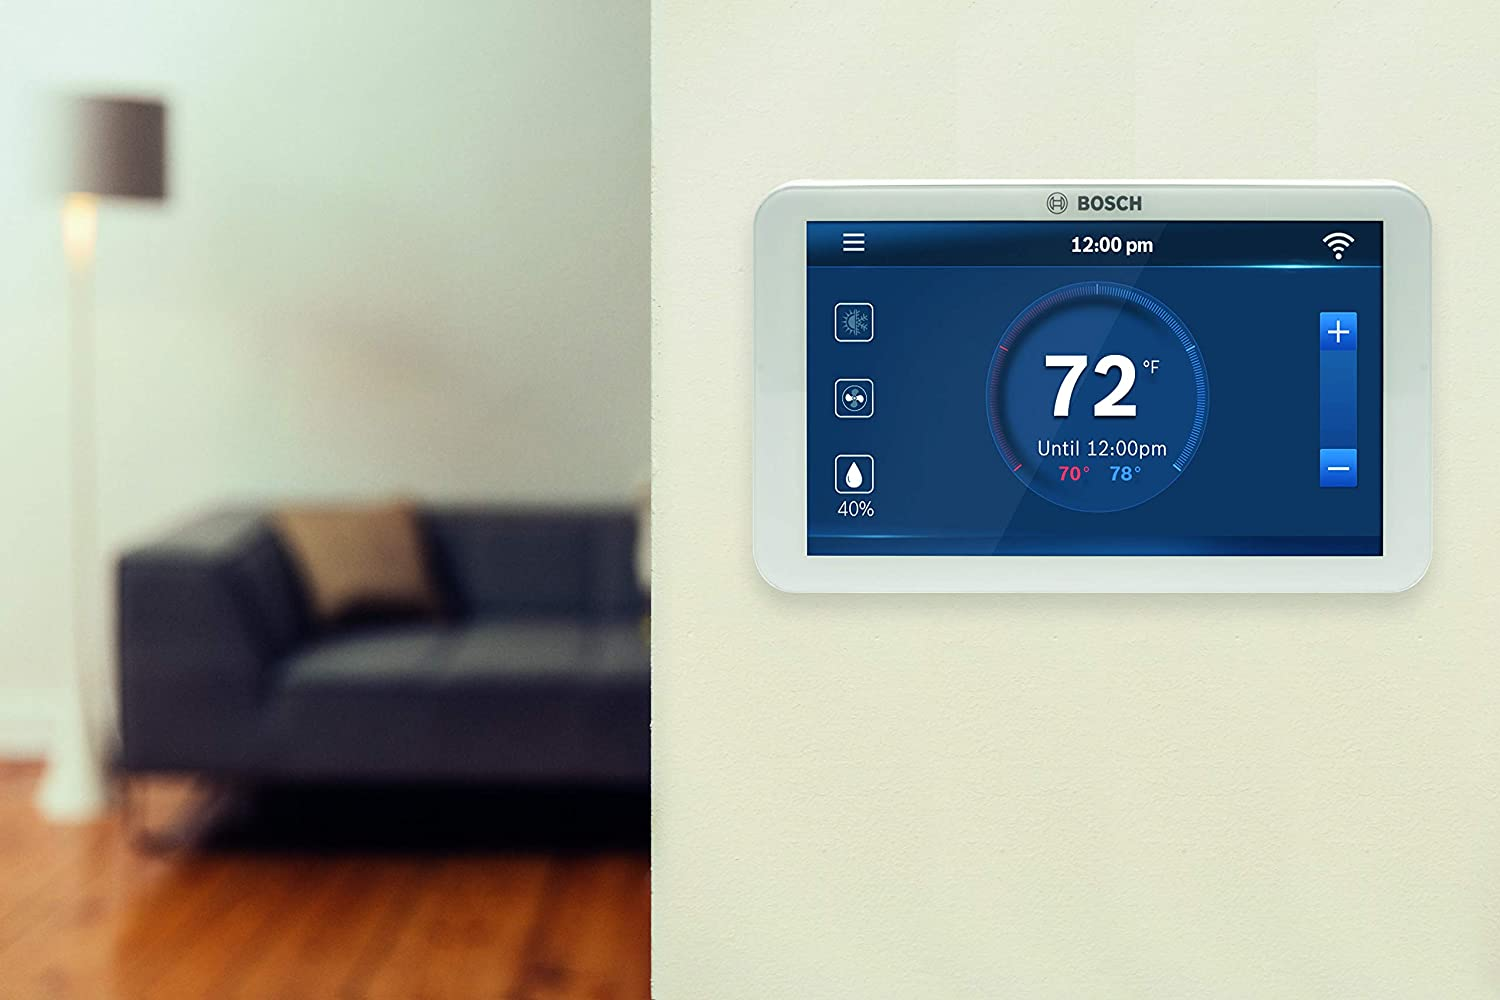 Bosch Bcc100 Connected Control Smart Phone Wi Fi Thermostat Honeywell Vfd Manual Compatible With Alexa Touch Screen